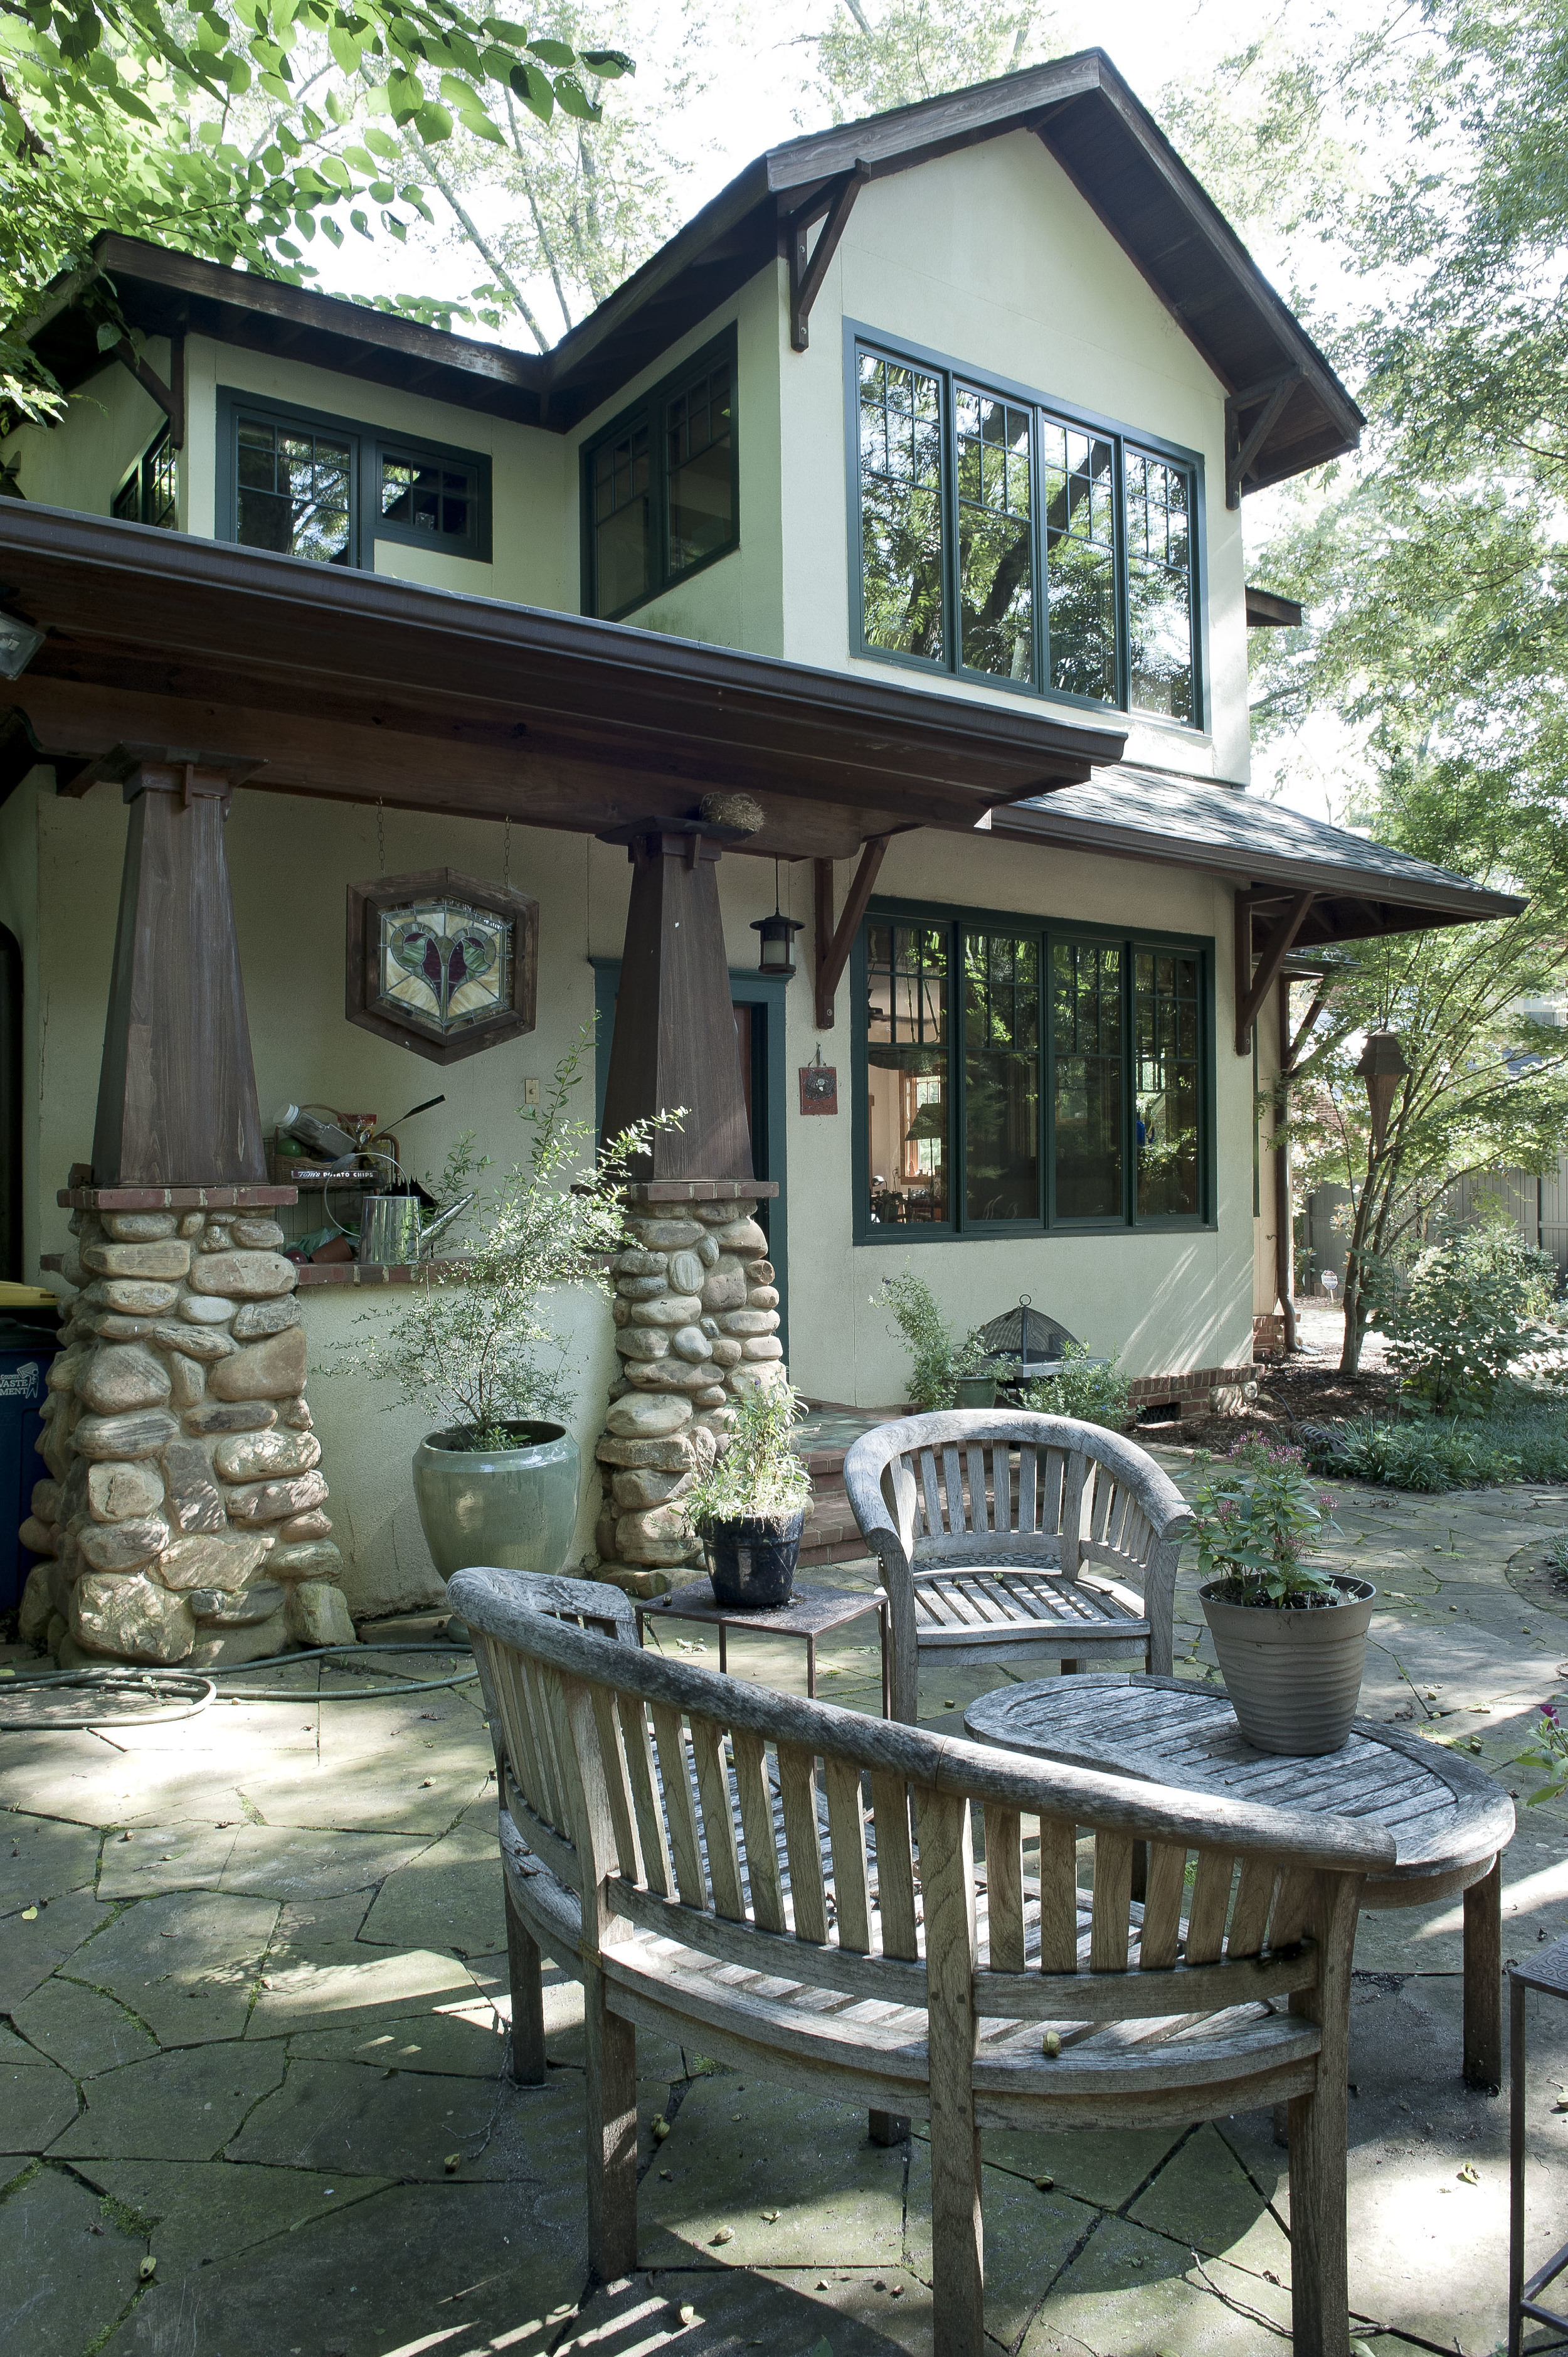 View of back of house-porch-patio.